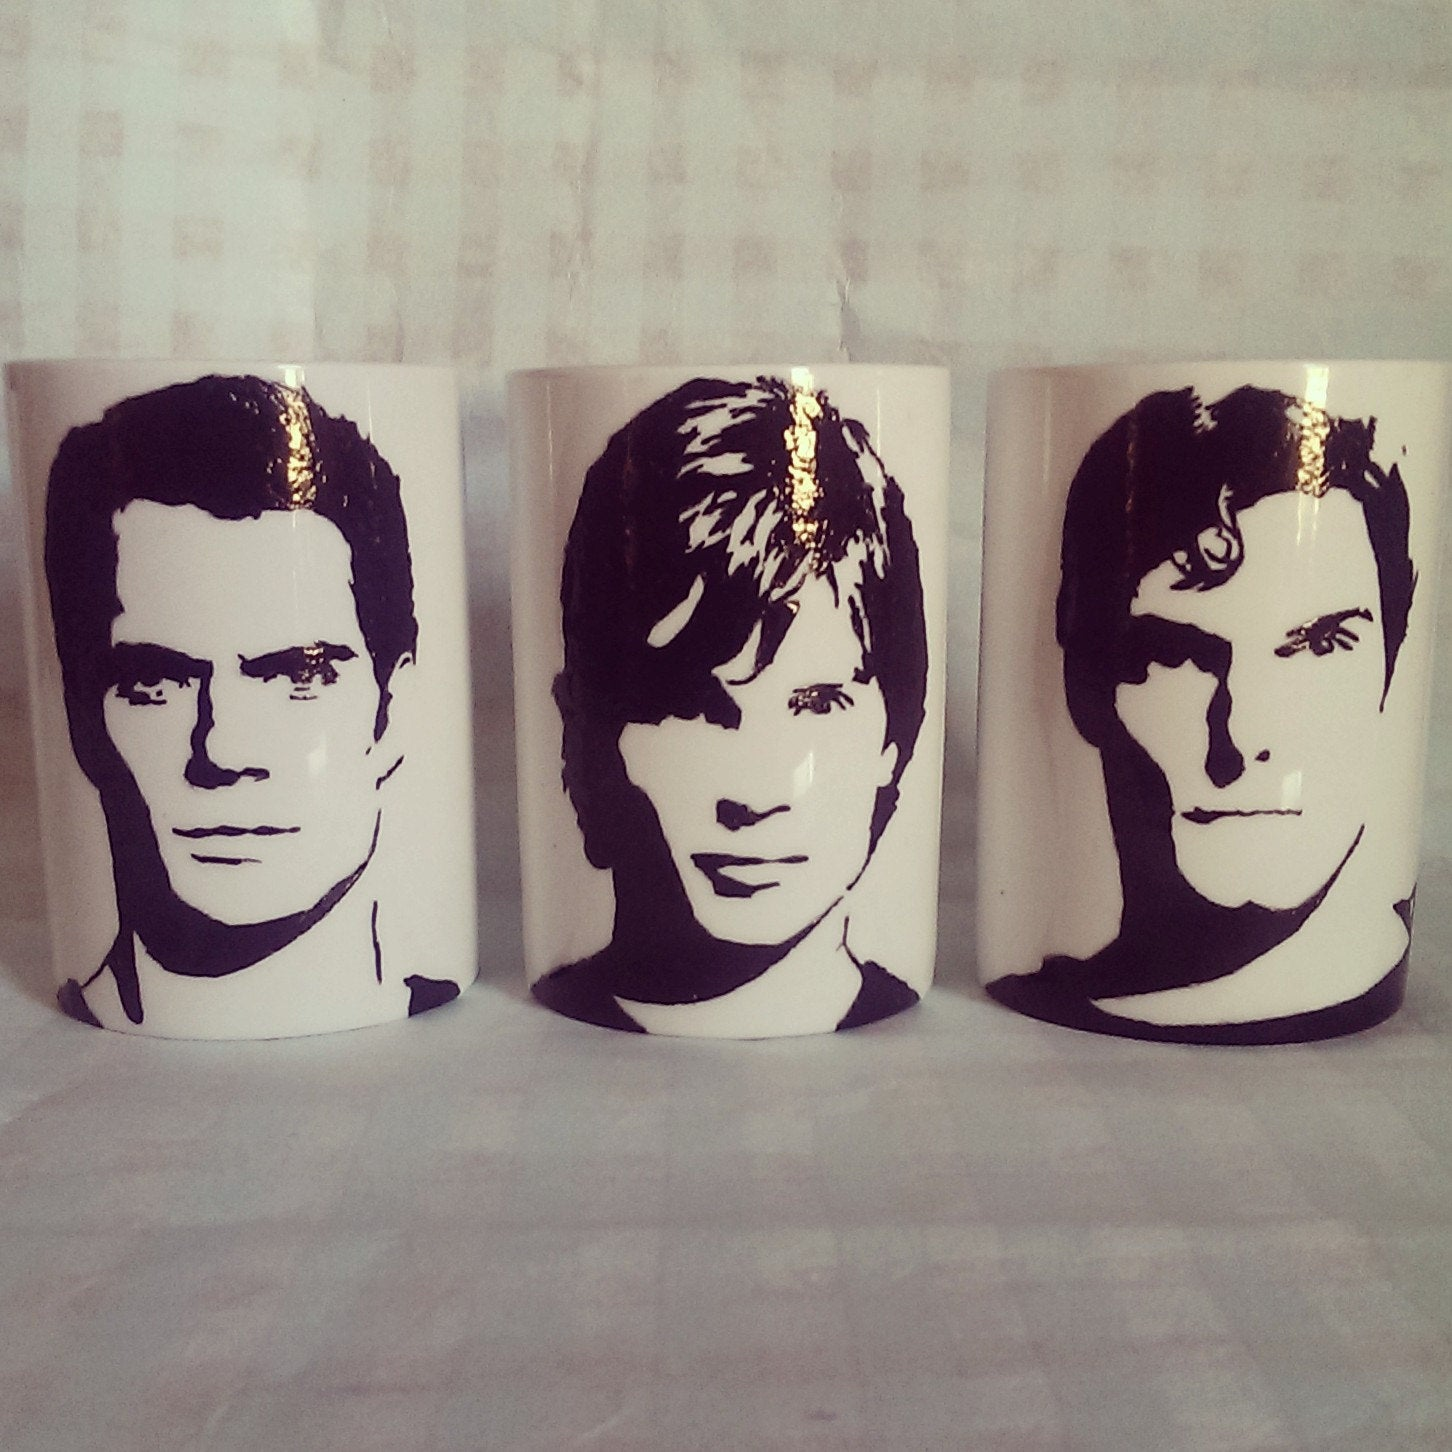 Henry Cavill, Tom Welling, Brandon Rough, Christopher reeves, Superman, Man of steel, superman returns Inspired Hand Printed Cup Set - ByCandlelight27